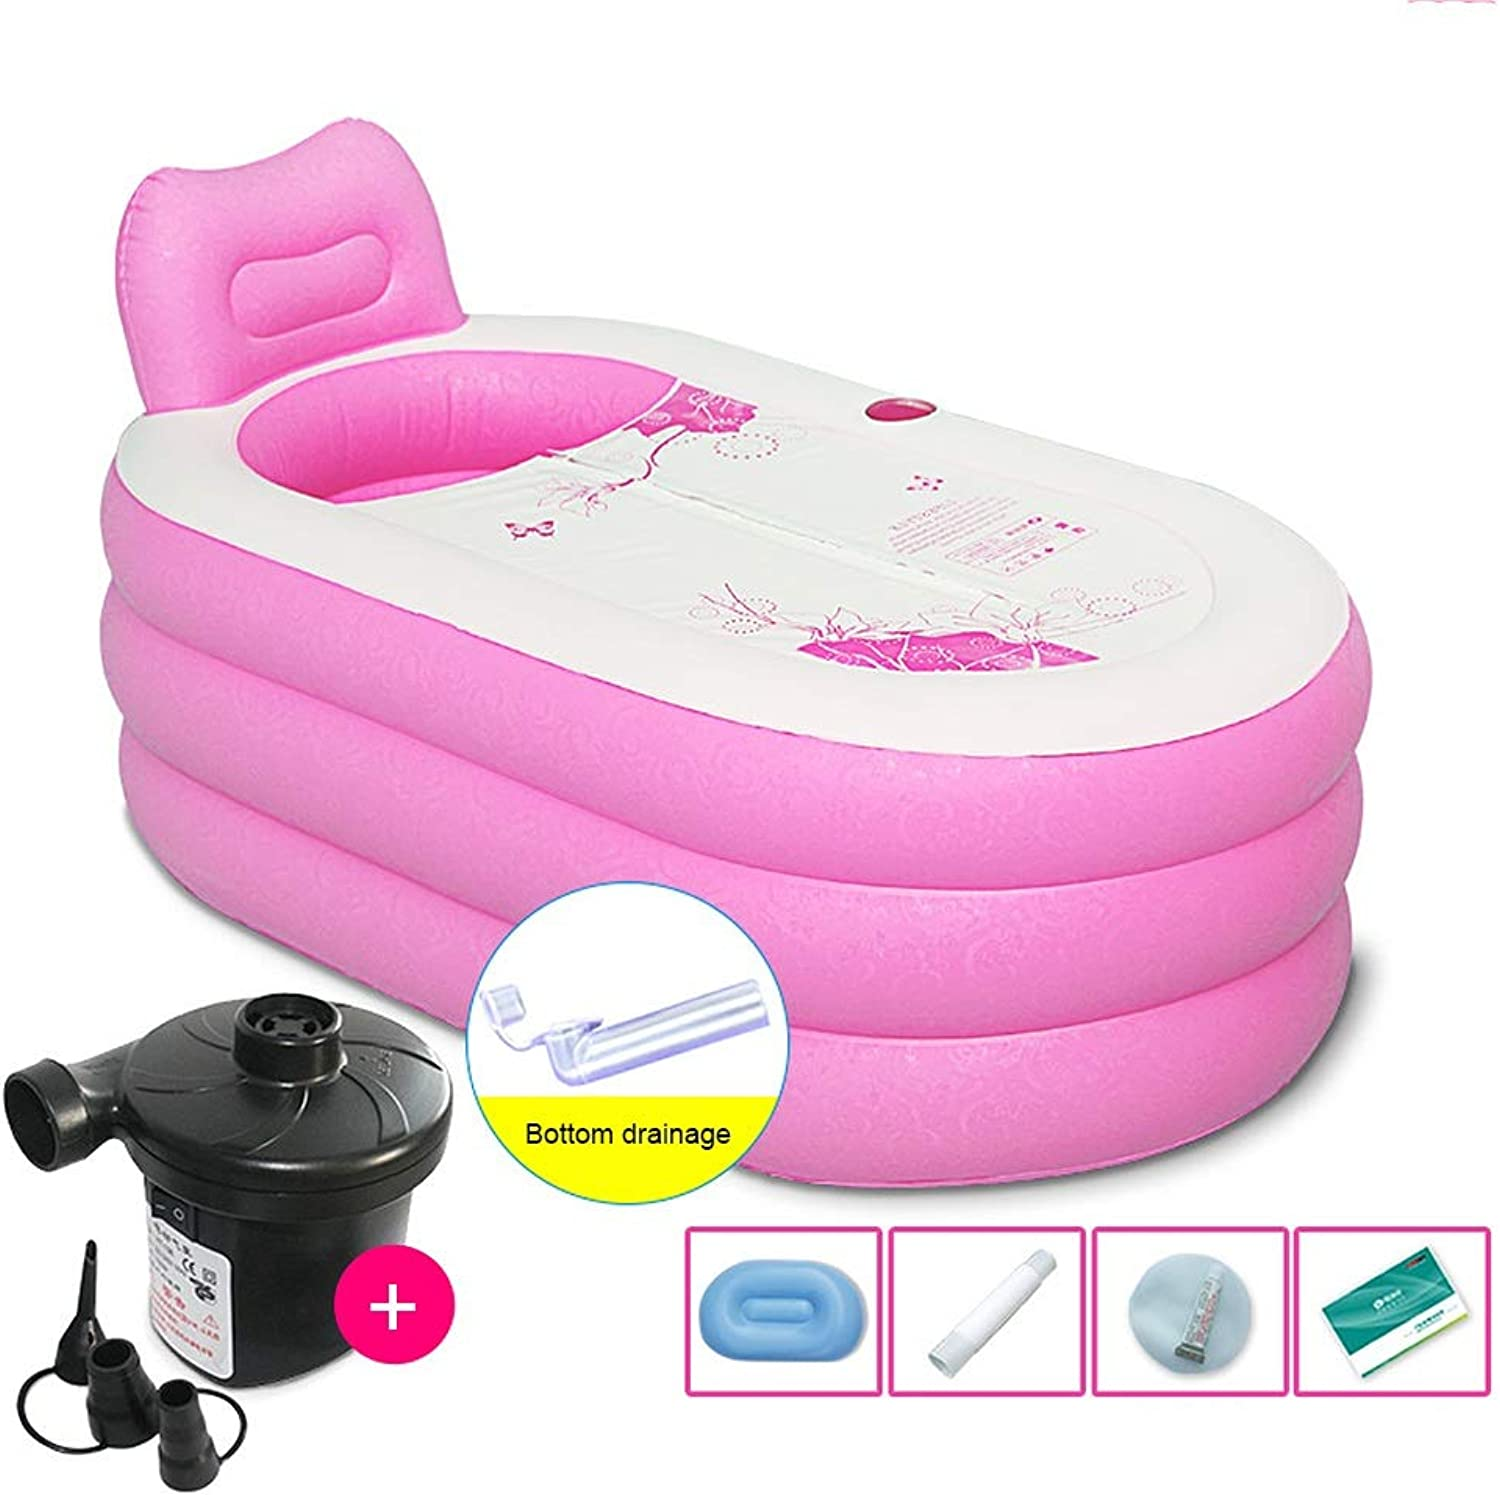 Pink Inflatable Bath Tub Freestanding, Foldable Portable PVC Soaking Tub Thickening For Adults And Kids, Rectangle Inflatable Kids Swimming Pool (color   Electric Pump, Size   M)